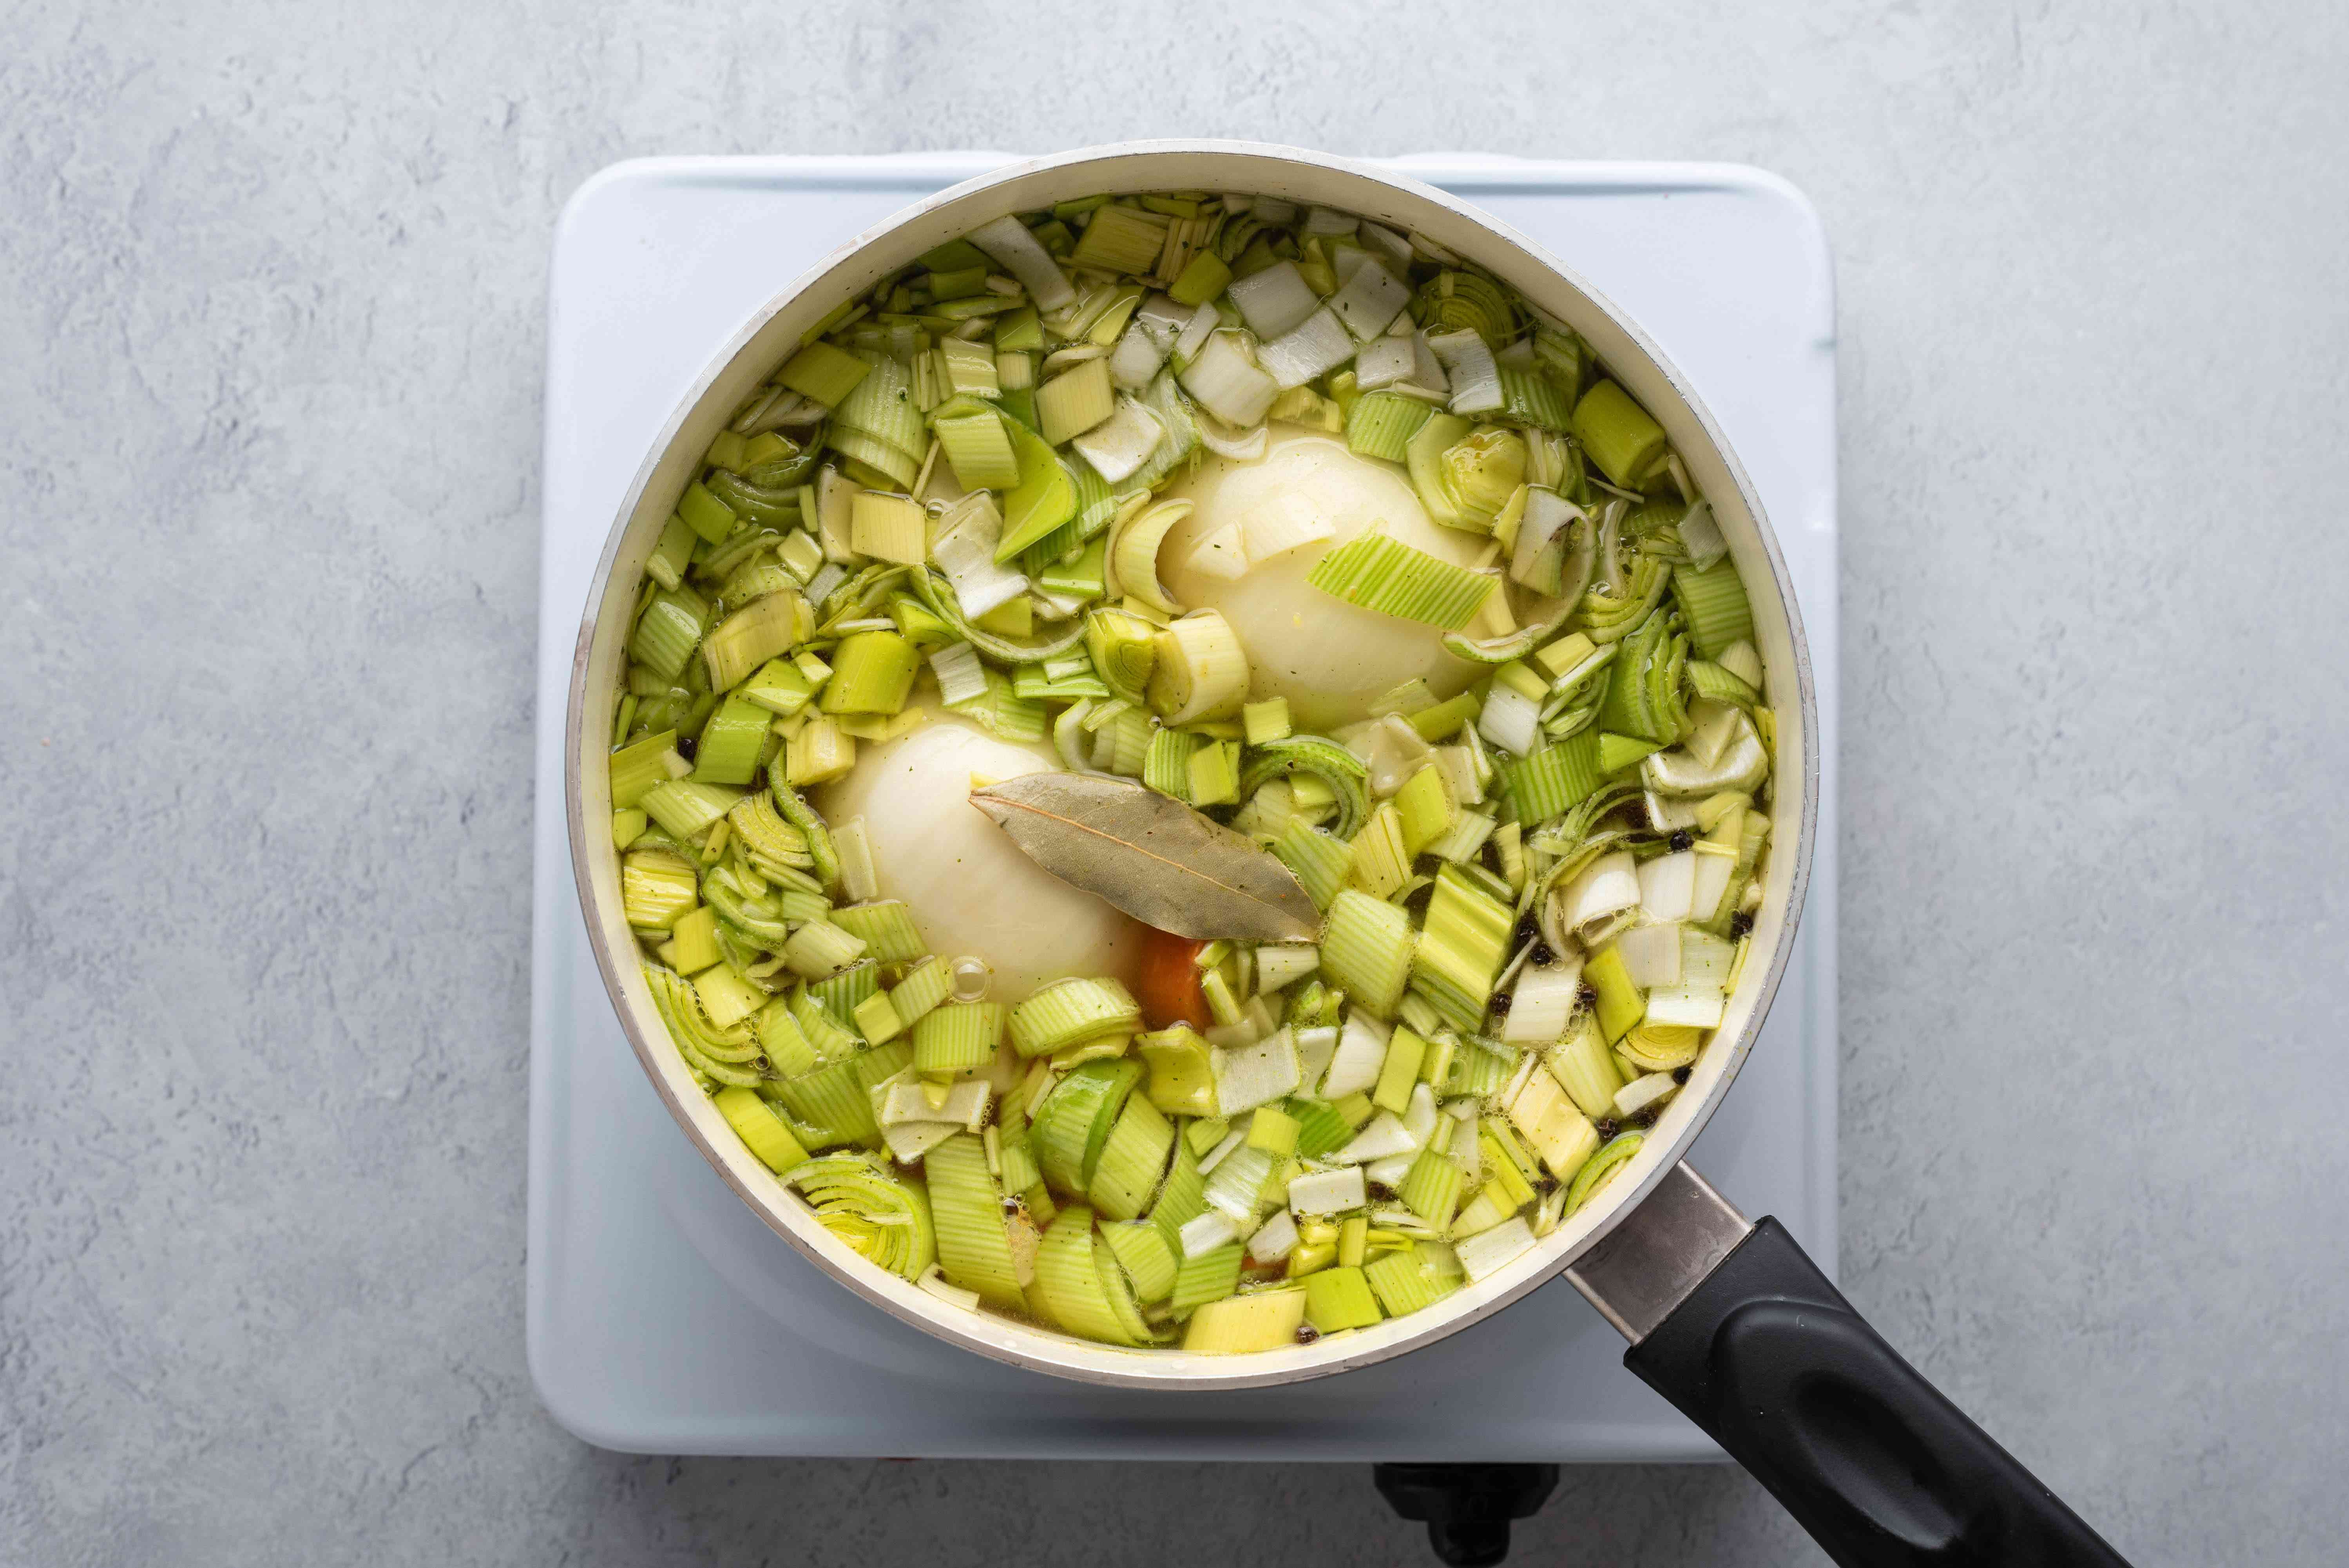 Add the leeks, carrots, celeriac, bay leaf, peppercorns, and broth to the onion in the saucepan